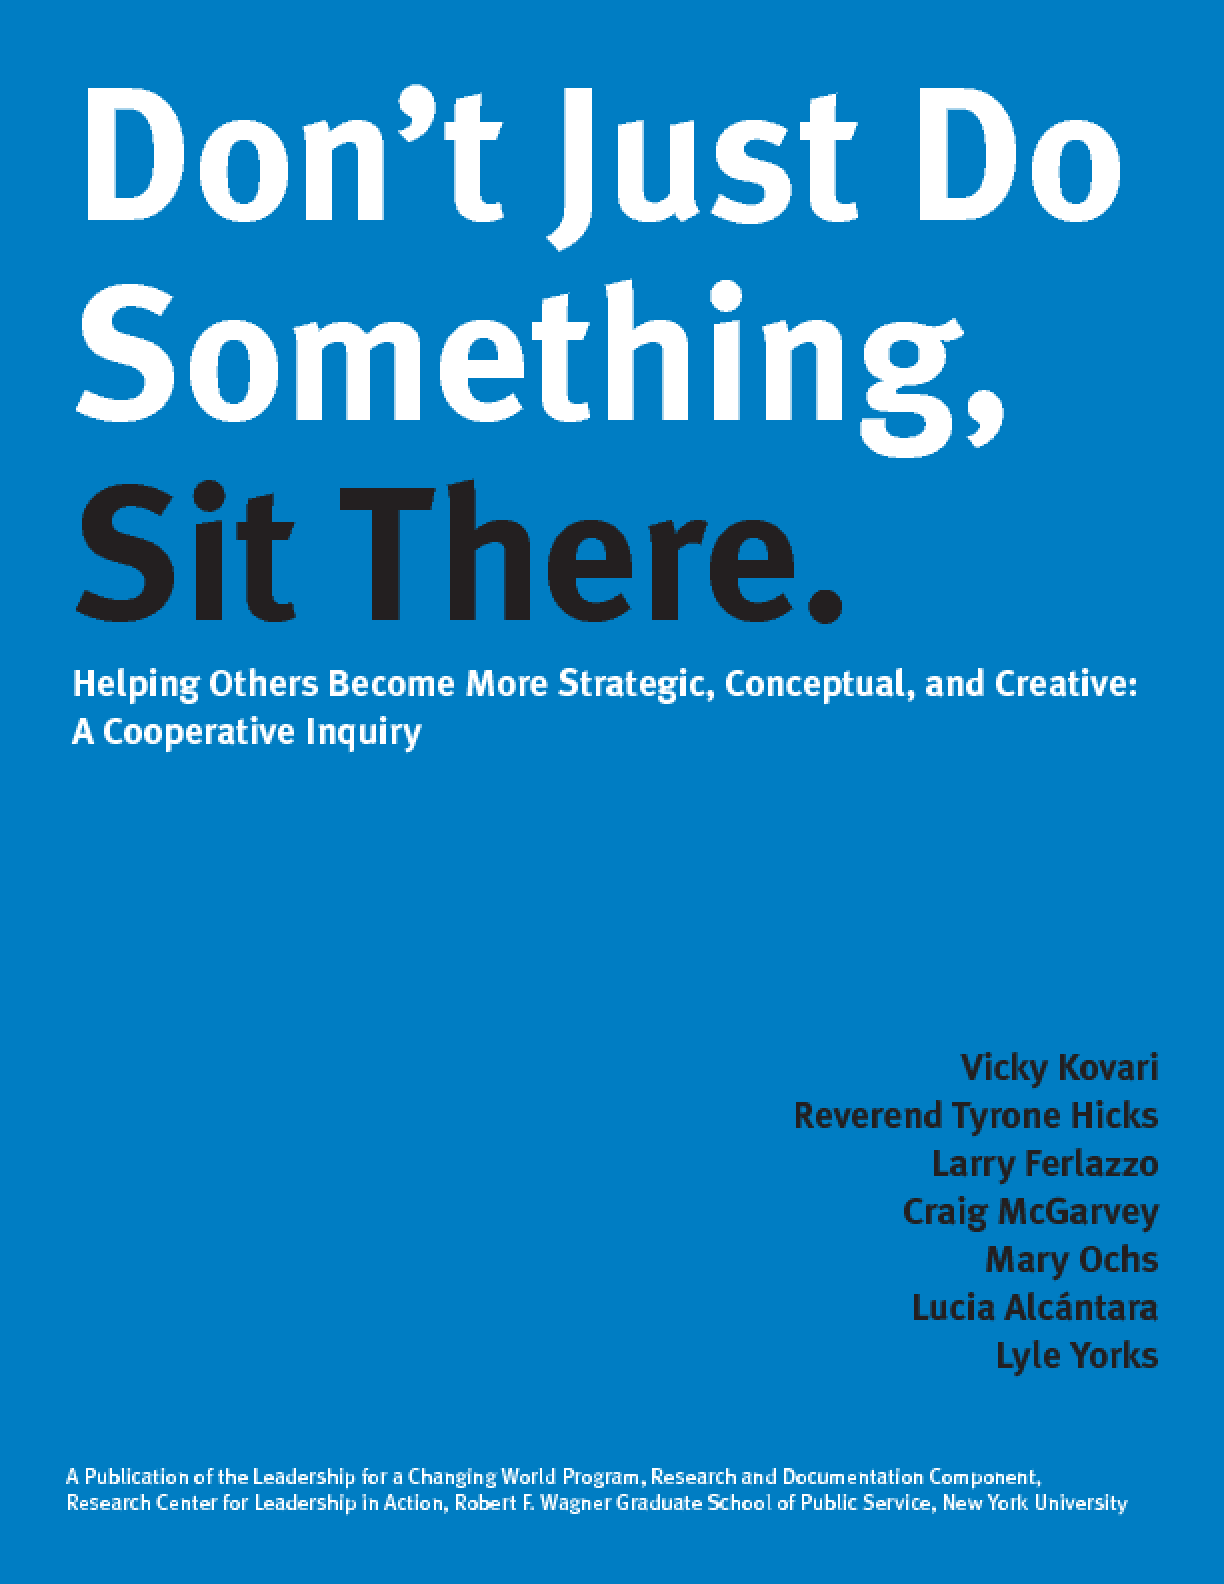 Don't Just Do Something, Sit There: Helping Others Become More Strategic, Conceptual, and Creative: A Cooperative Inquiry